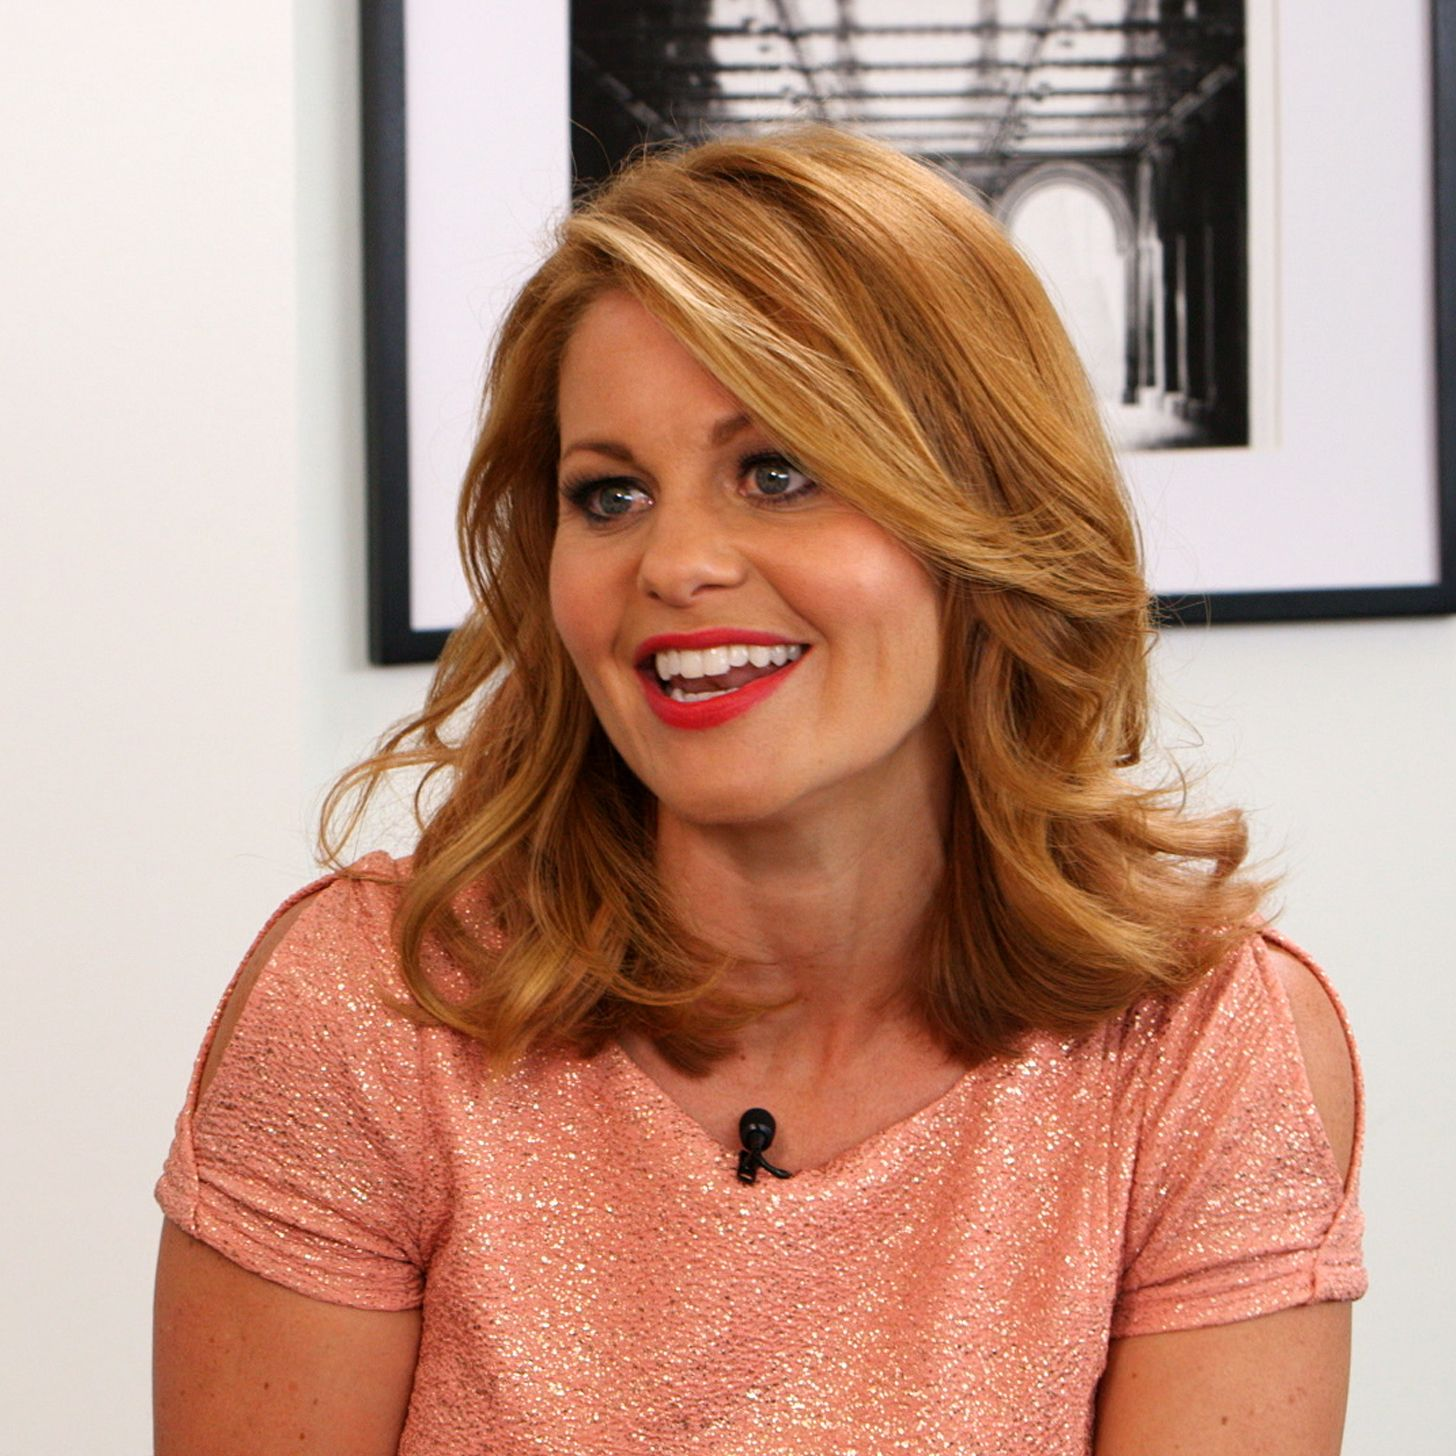 fuller house, indeed: kimmy gibbler and stephanie tanner to move